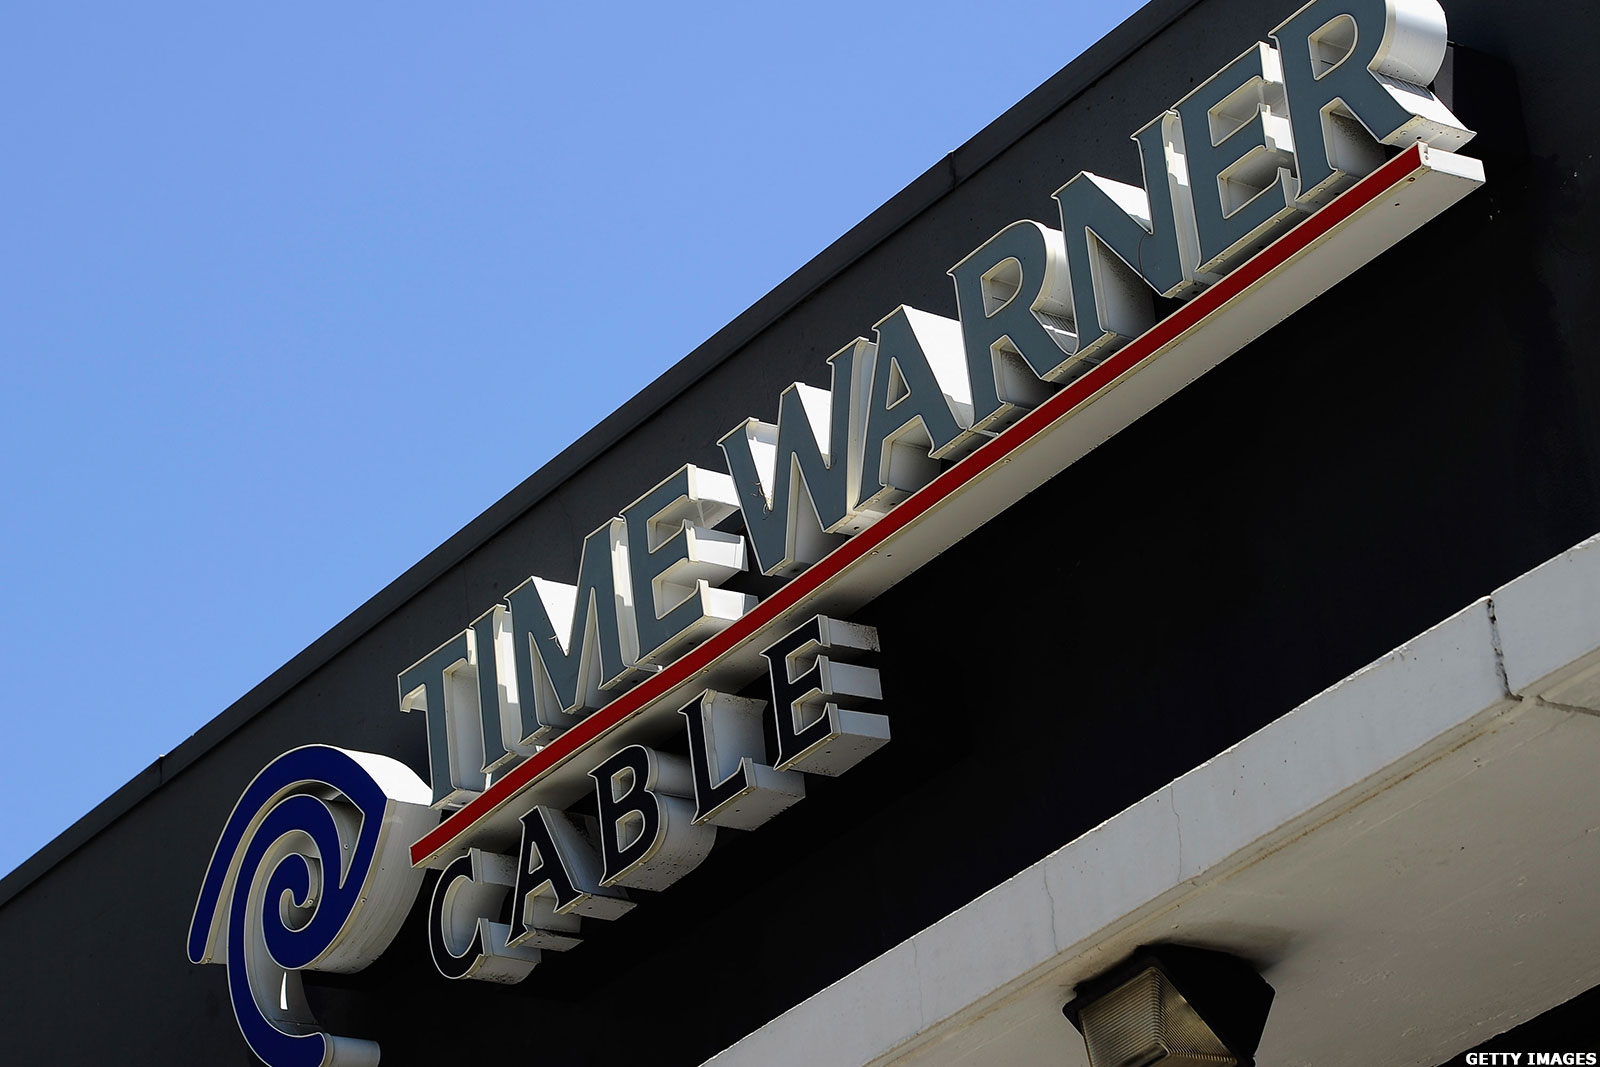 Charter communications chtr buys time warner cable twc for charter communications chtr buys time warner cable twc for 787 billion thestreet buycottarizona Image collections